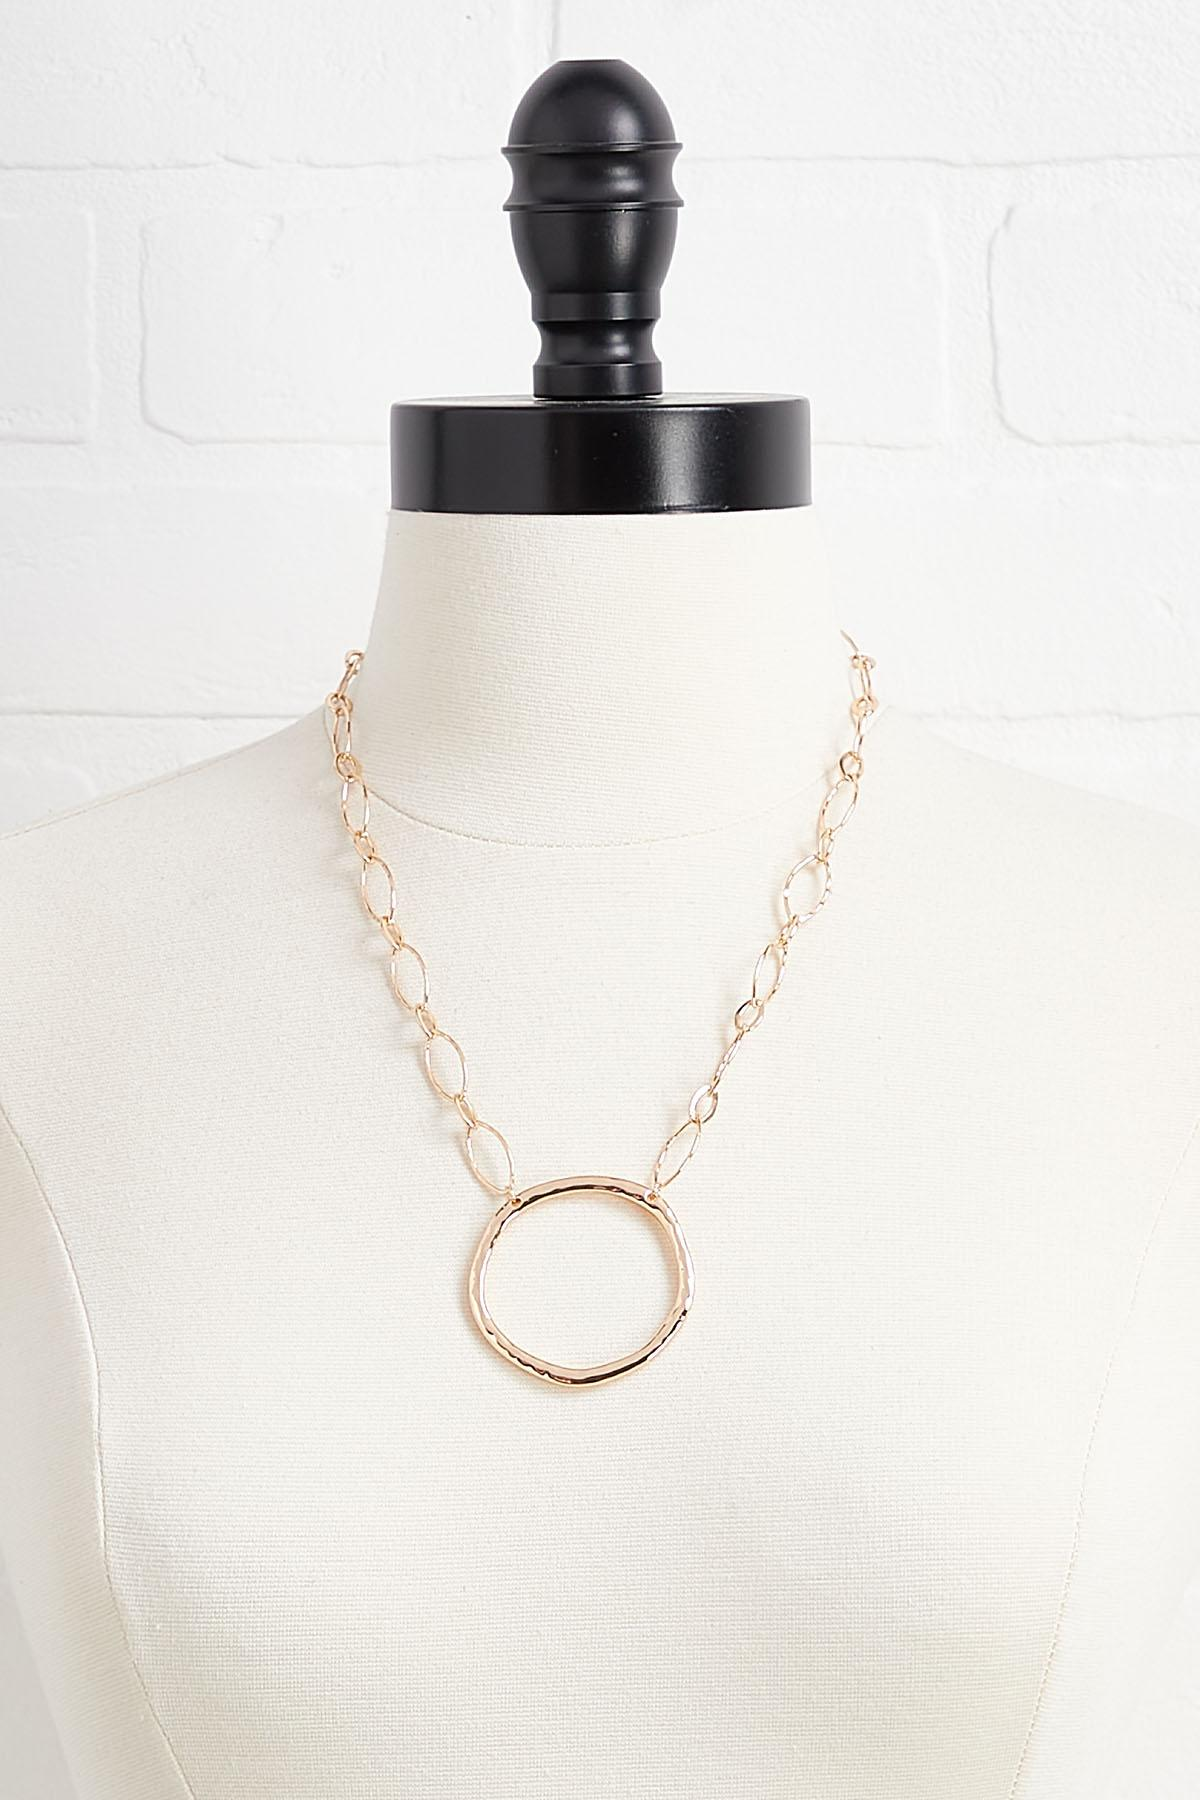 Metal Chain And Pendant Necklace